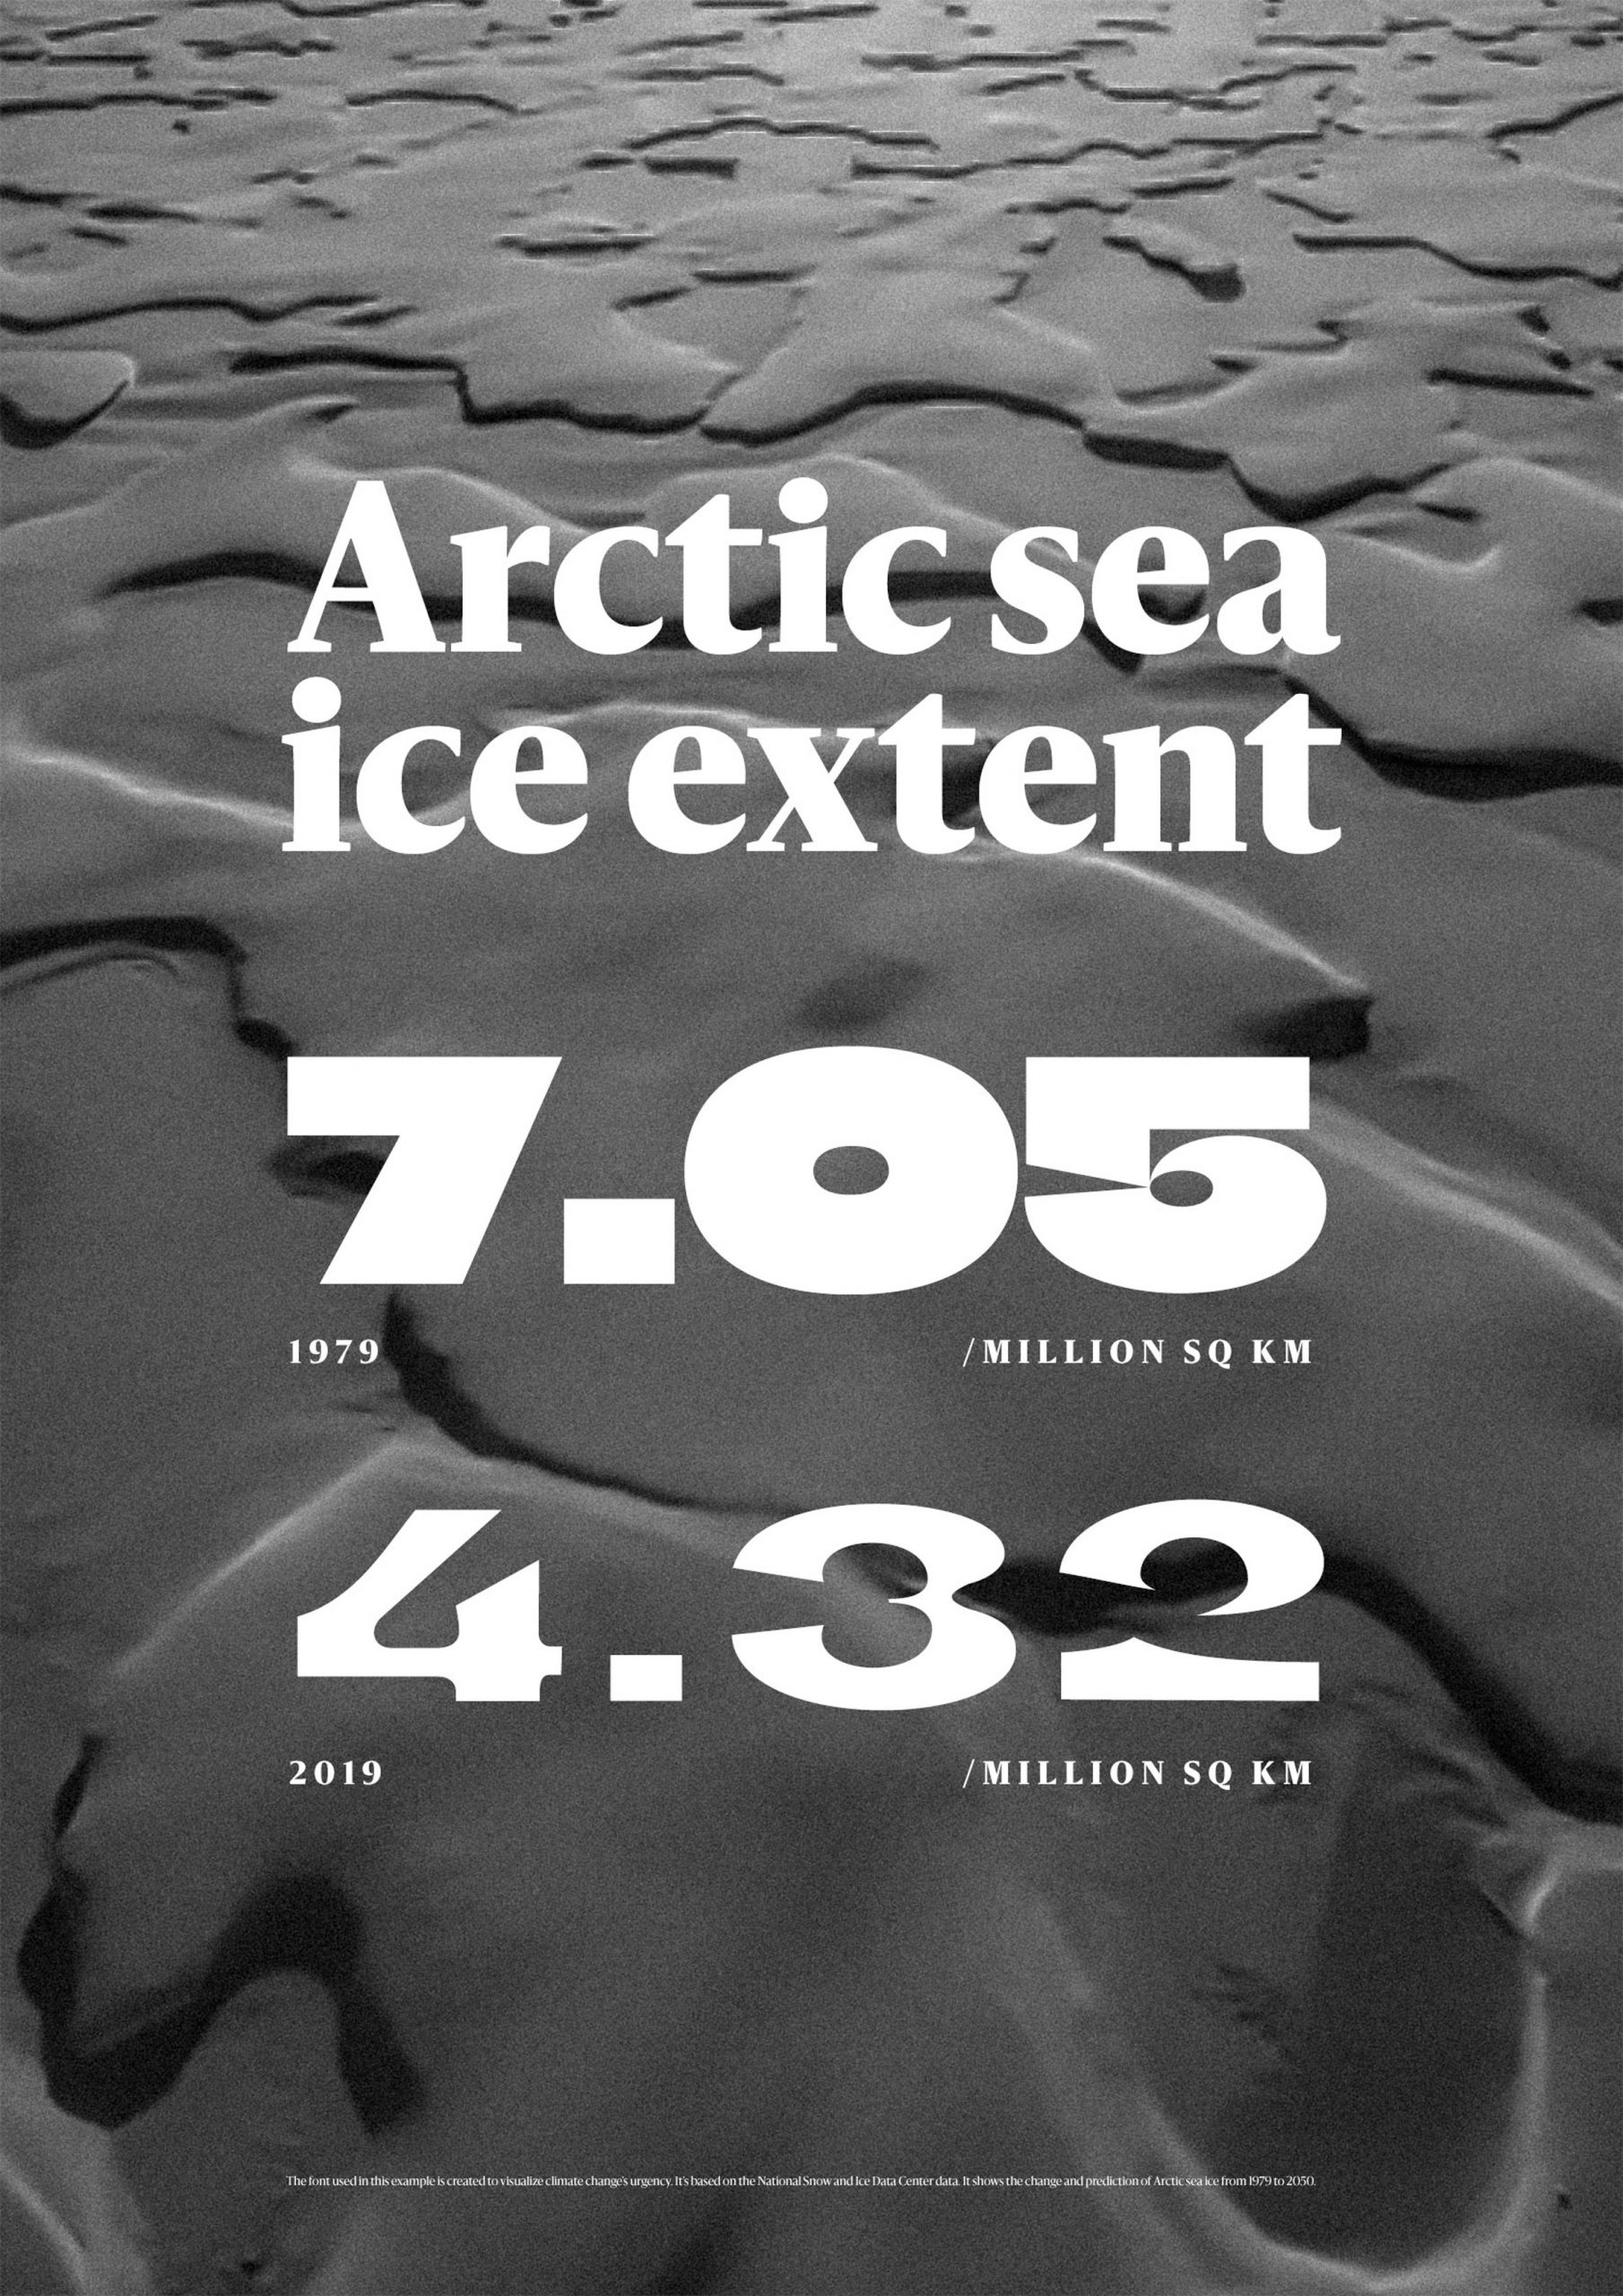 Poster illustrating rising sea levels using a the Climate Change Font by Helsingin Sanomat